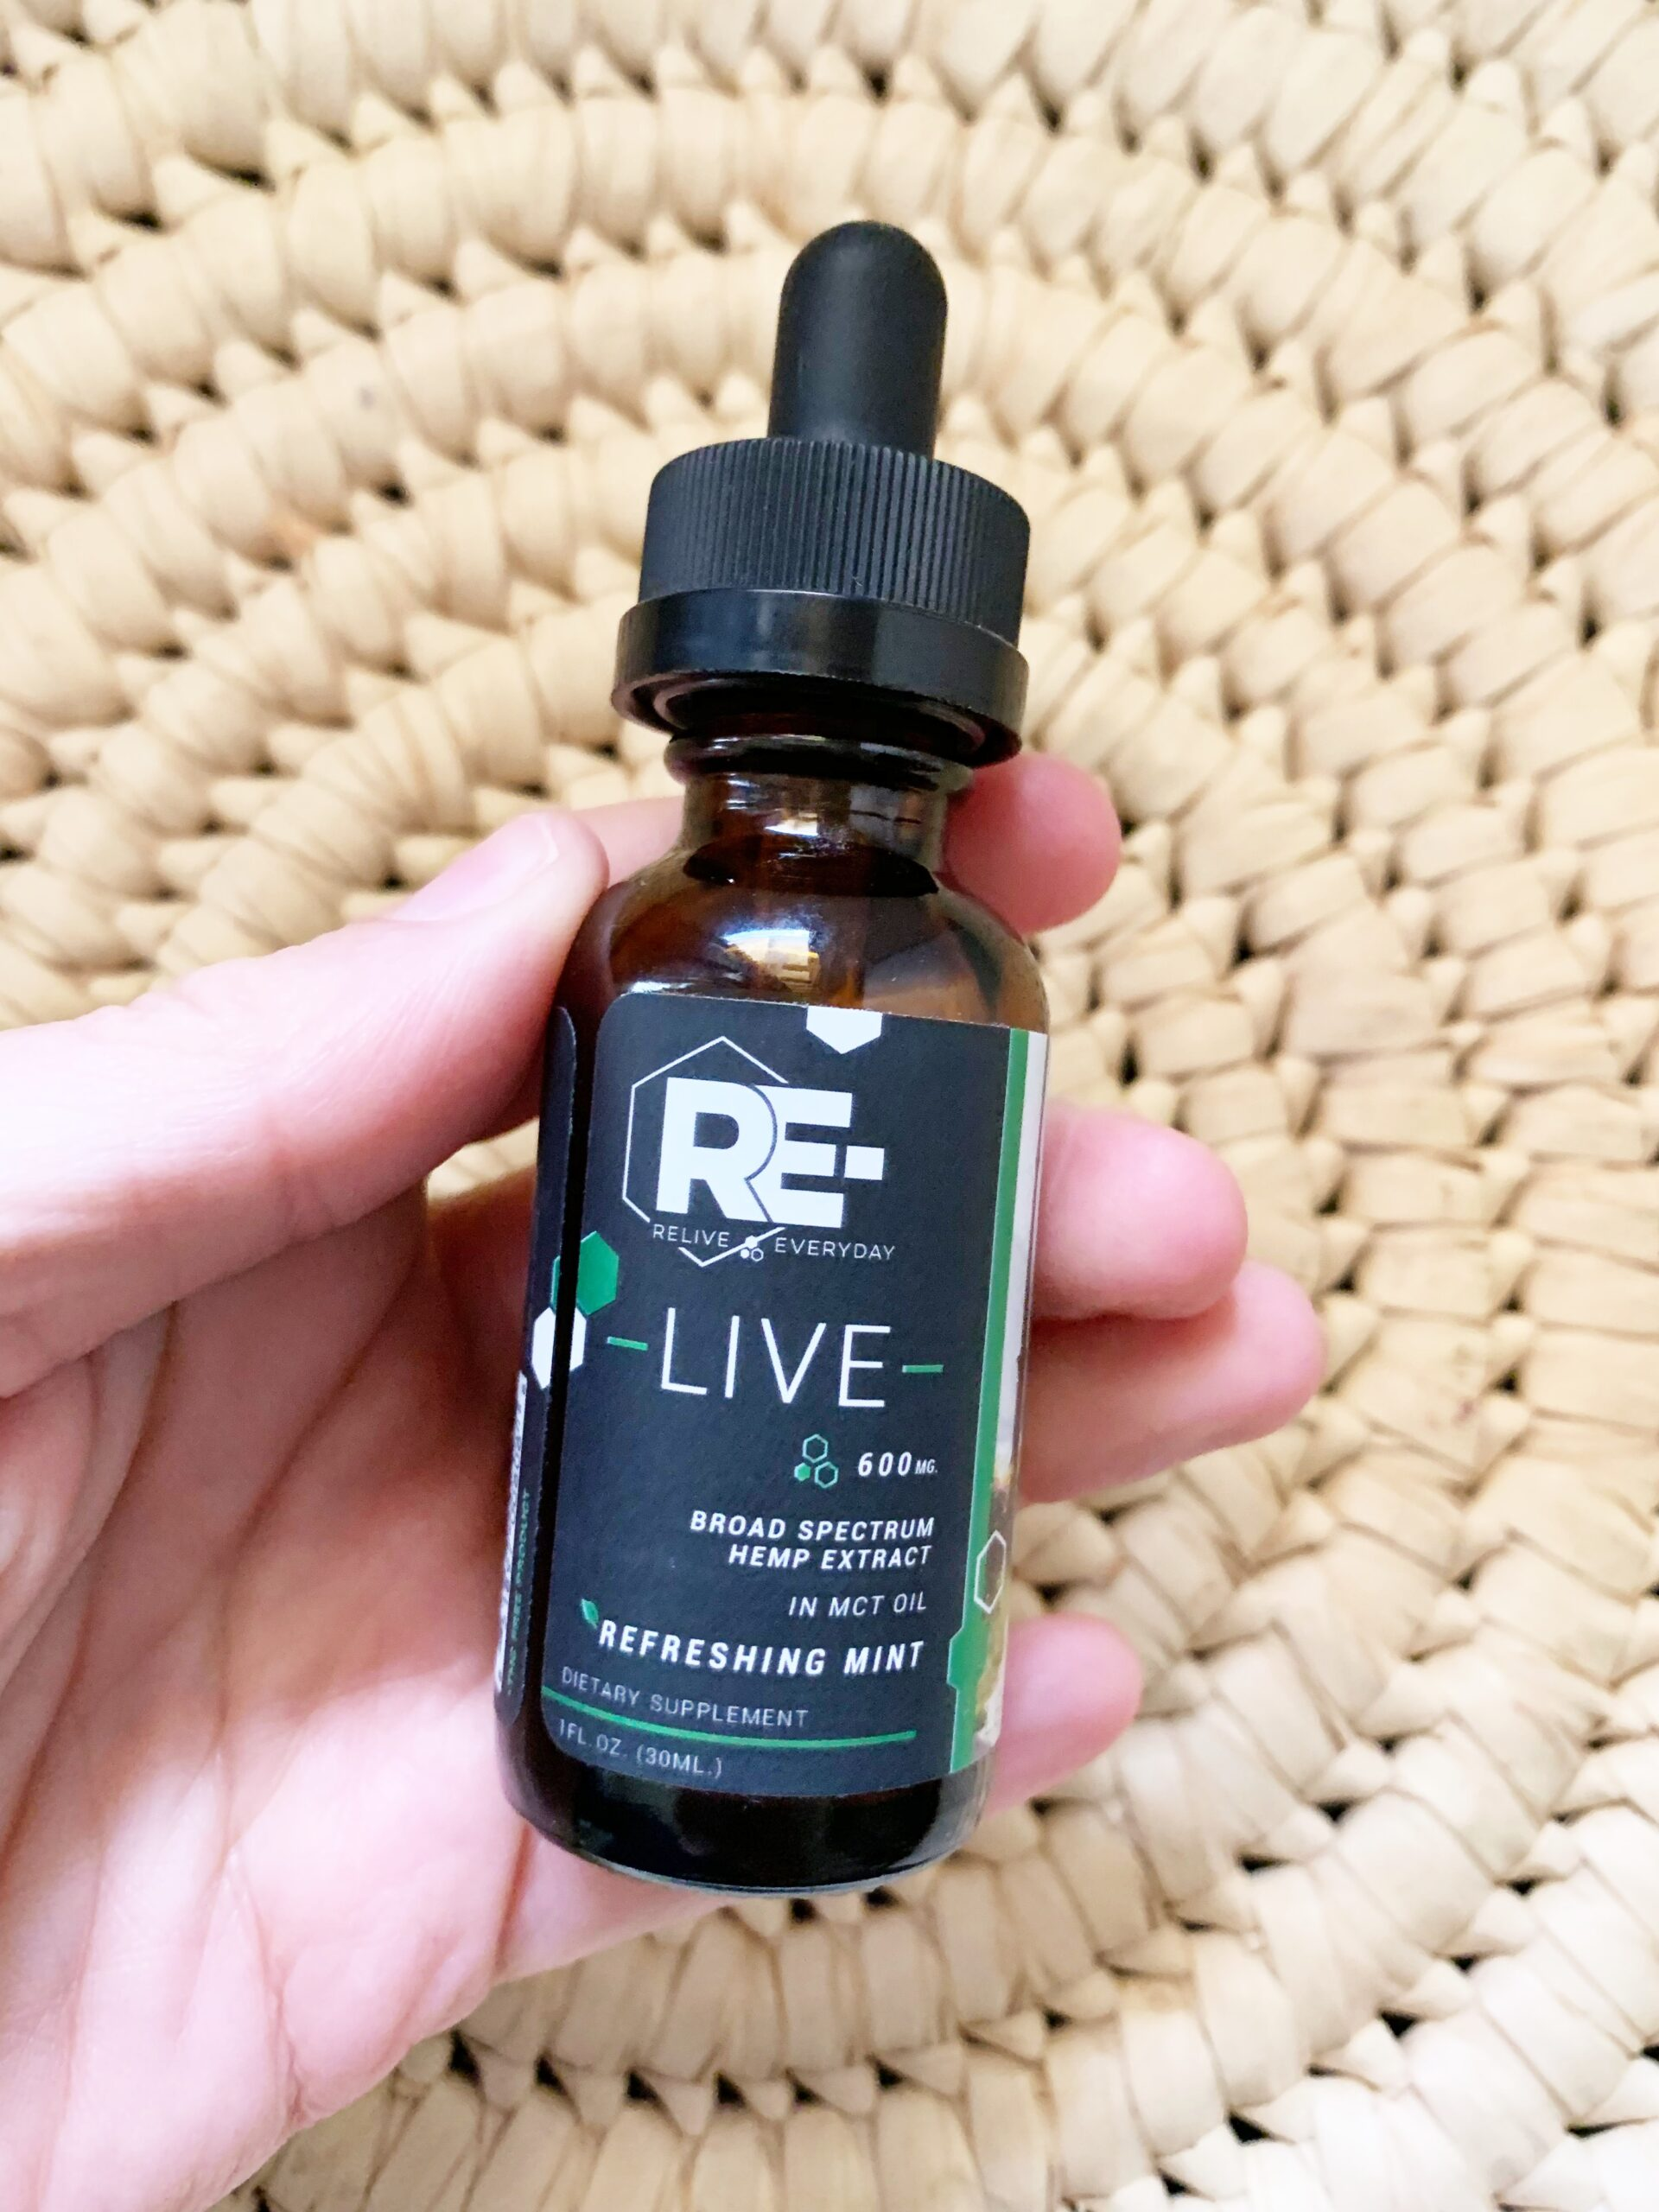 Relive Everyday CBD Oil Tinctures